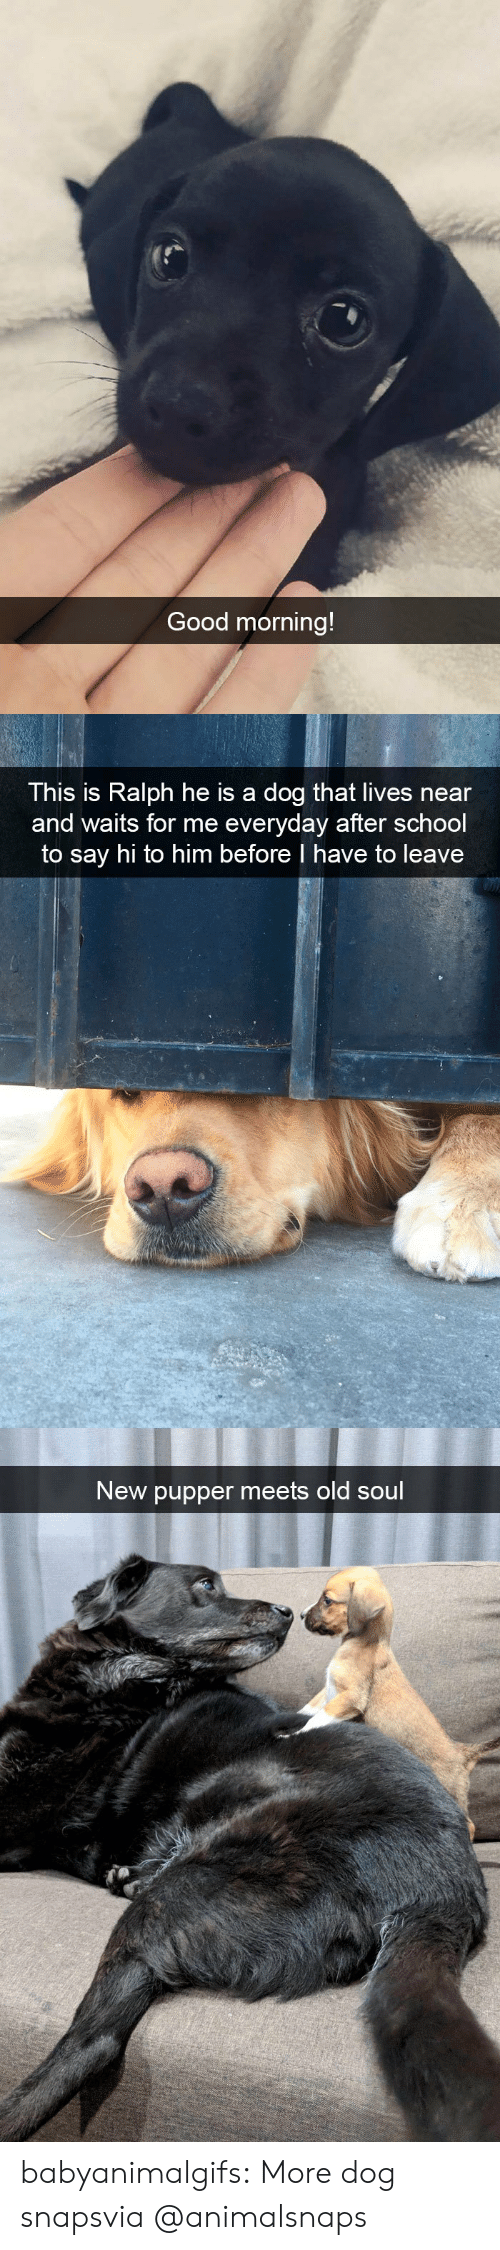 School, Tumblr, and Good Morning: Good morning!   This is Ralph he is a dog that lives near  and waits for me everyday after school  to say hi to him before I have to leave   New pupper meets old soul babyanimalgifs:  More dog snapsvia @animalsnaps